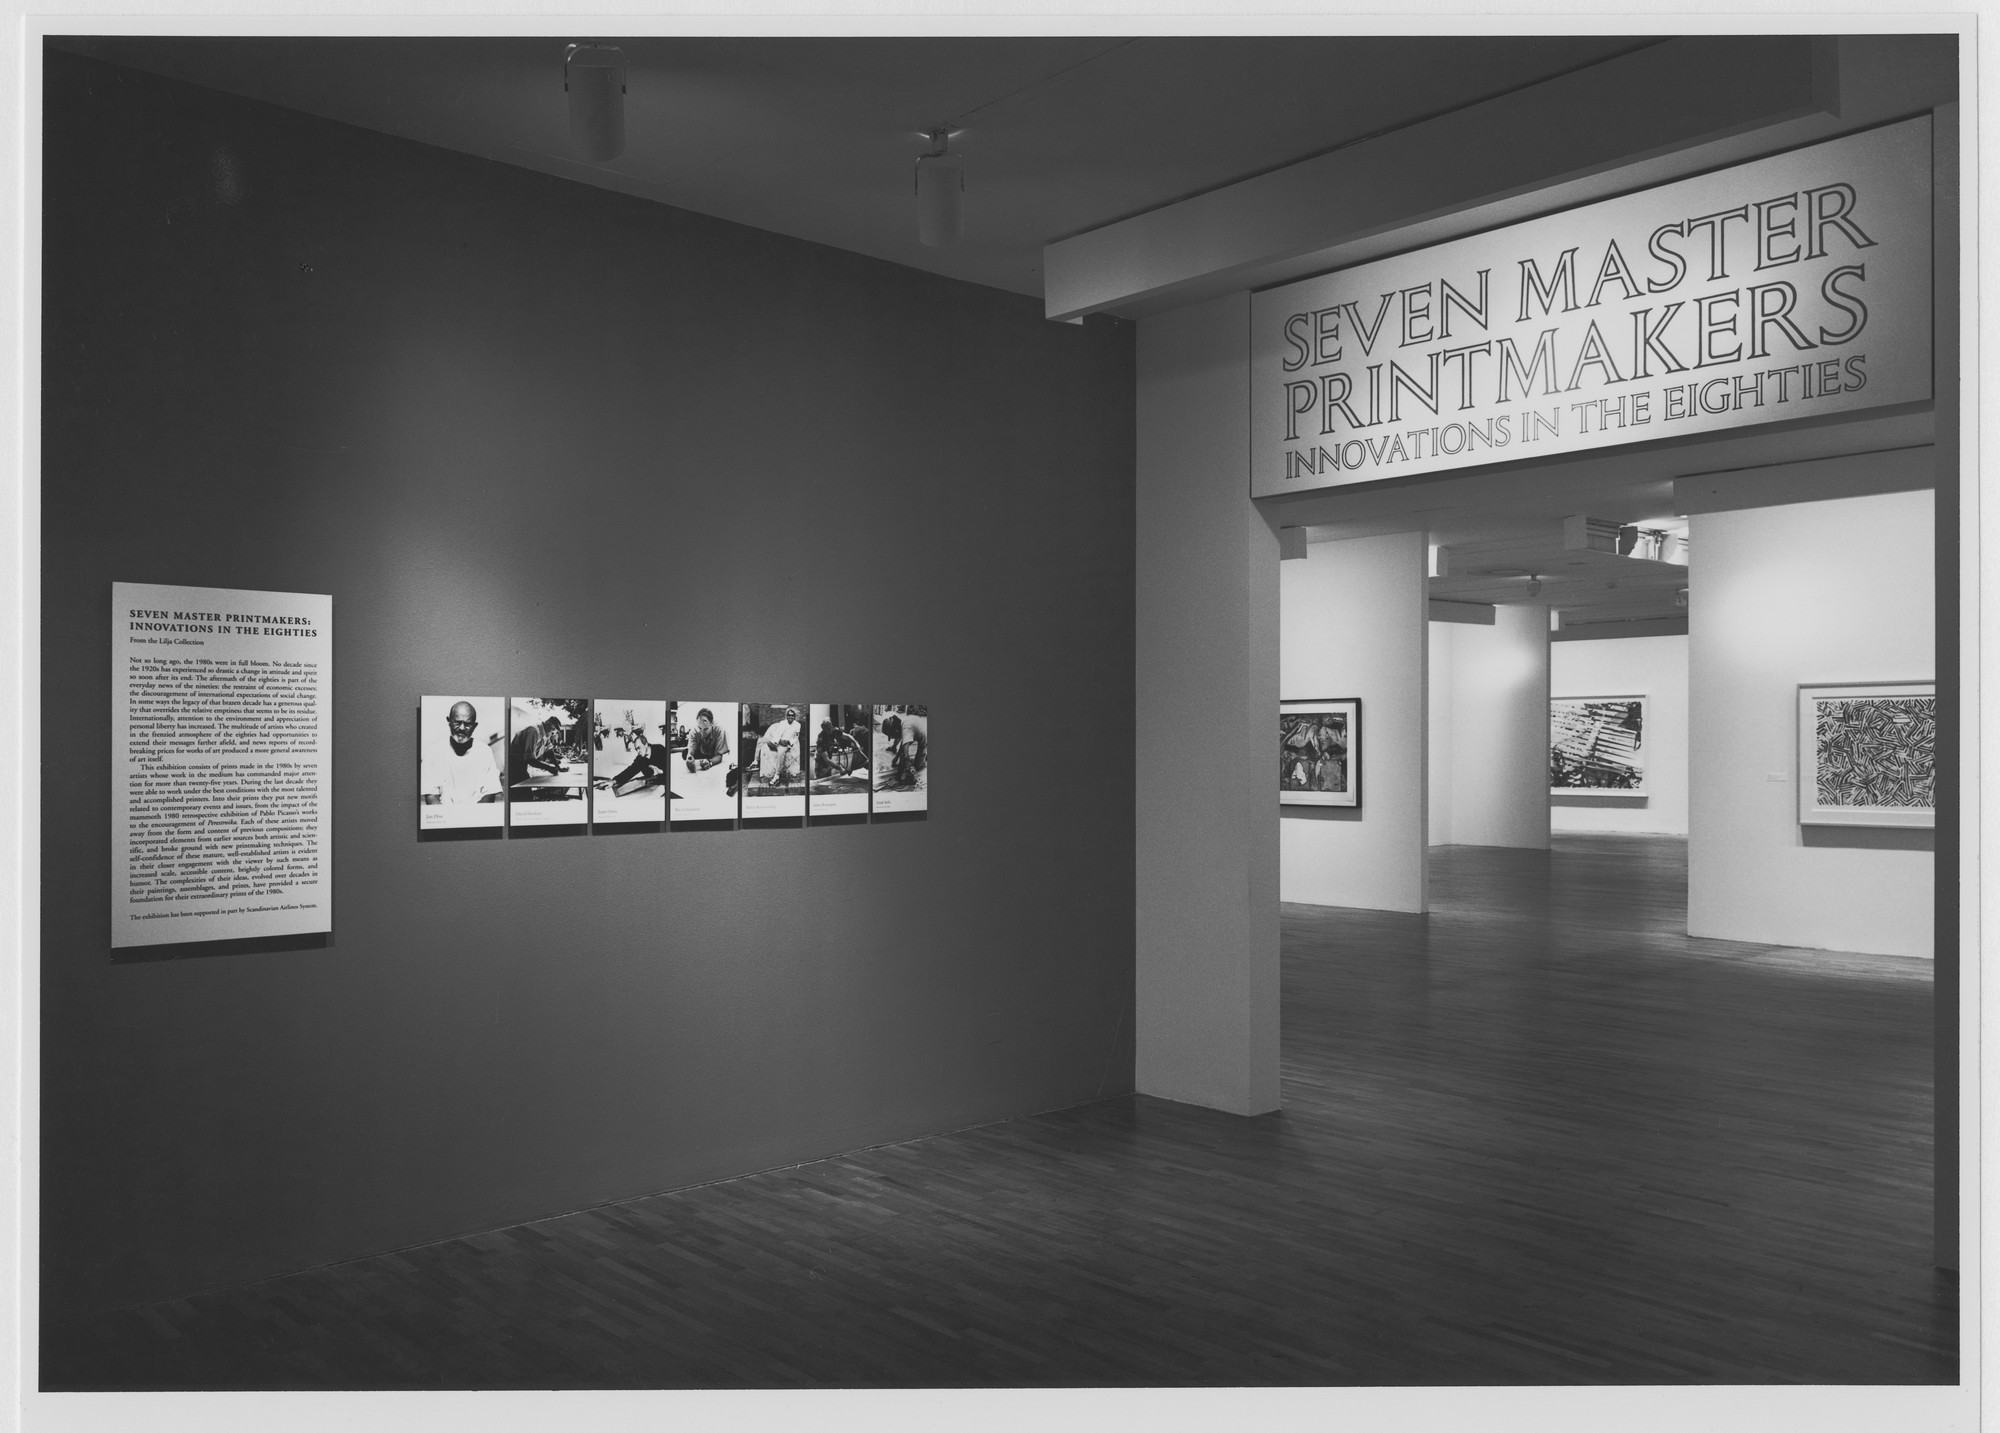 "Installation view of the exhibition, ""Seven Master Printmakers: Innovations in the 1980s"" May 16, 1991–August 13, 1991. Photographic Archive. The Museum of Modern Art Archives, New York. IN1582.1. Photograph by Mali Olatunji."